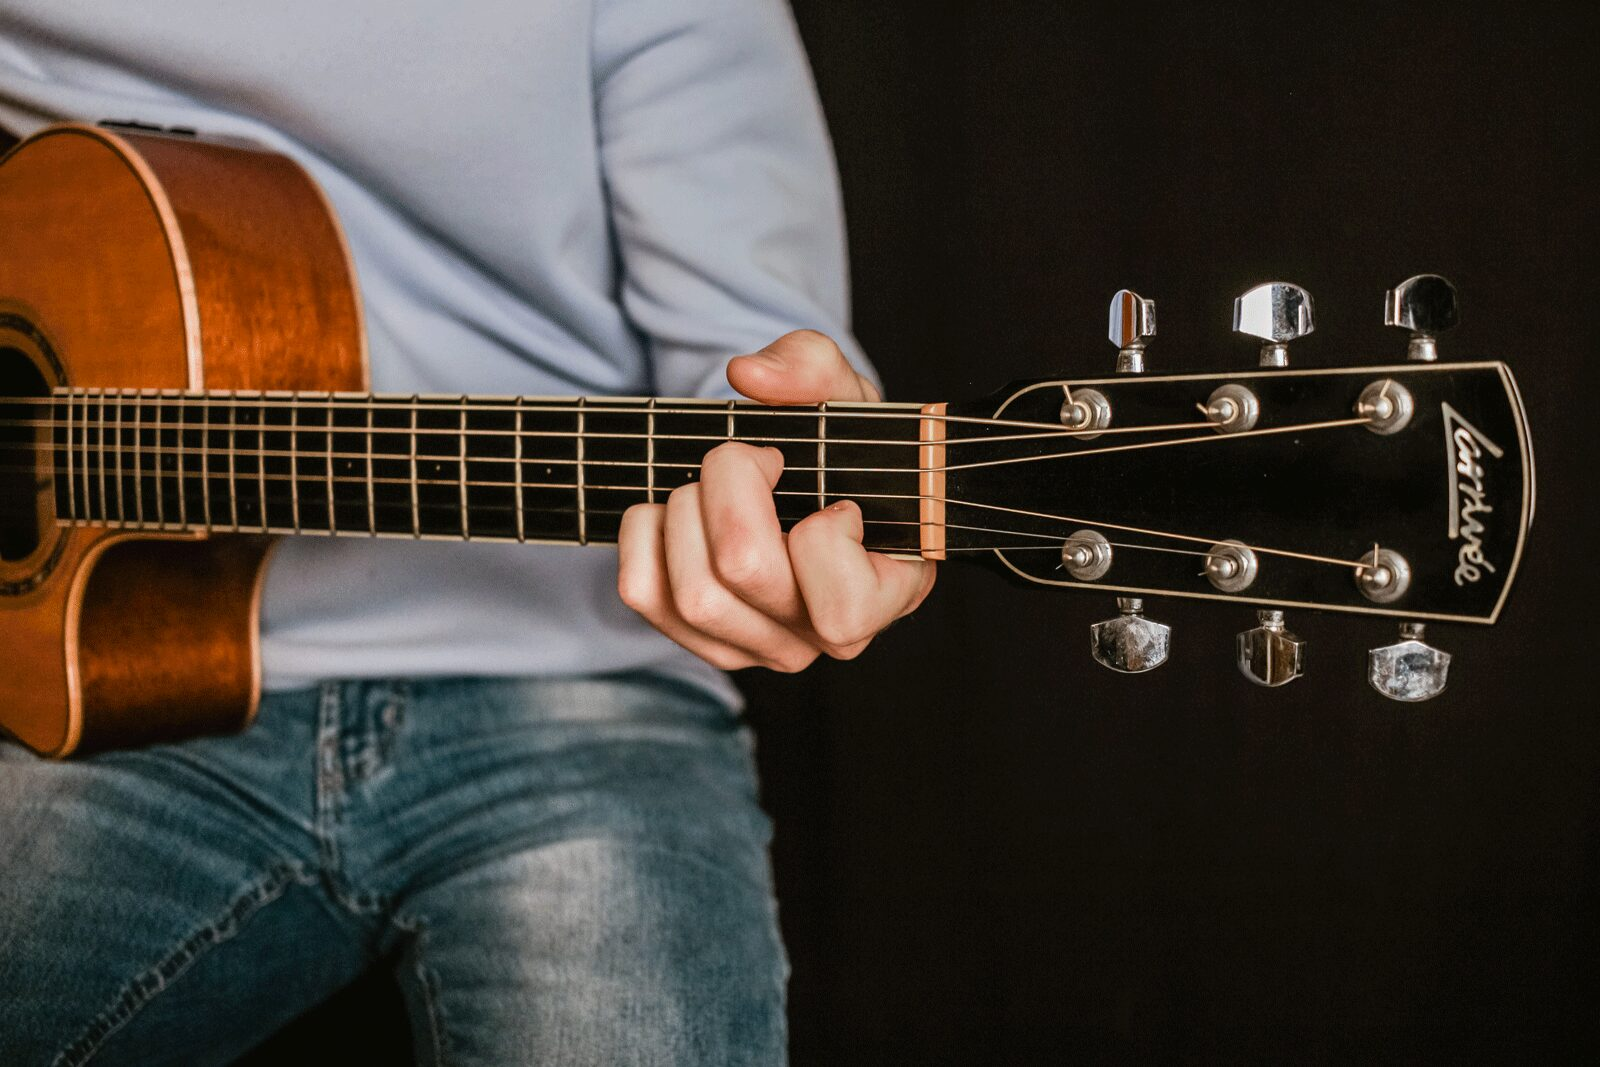 Playing Guitar | The Top 6 Techniques For Practicing Electric Guitar